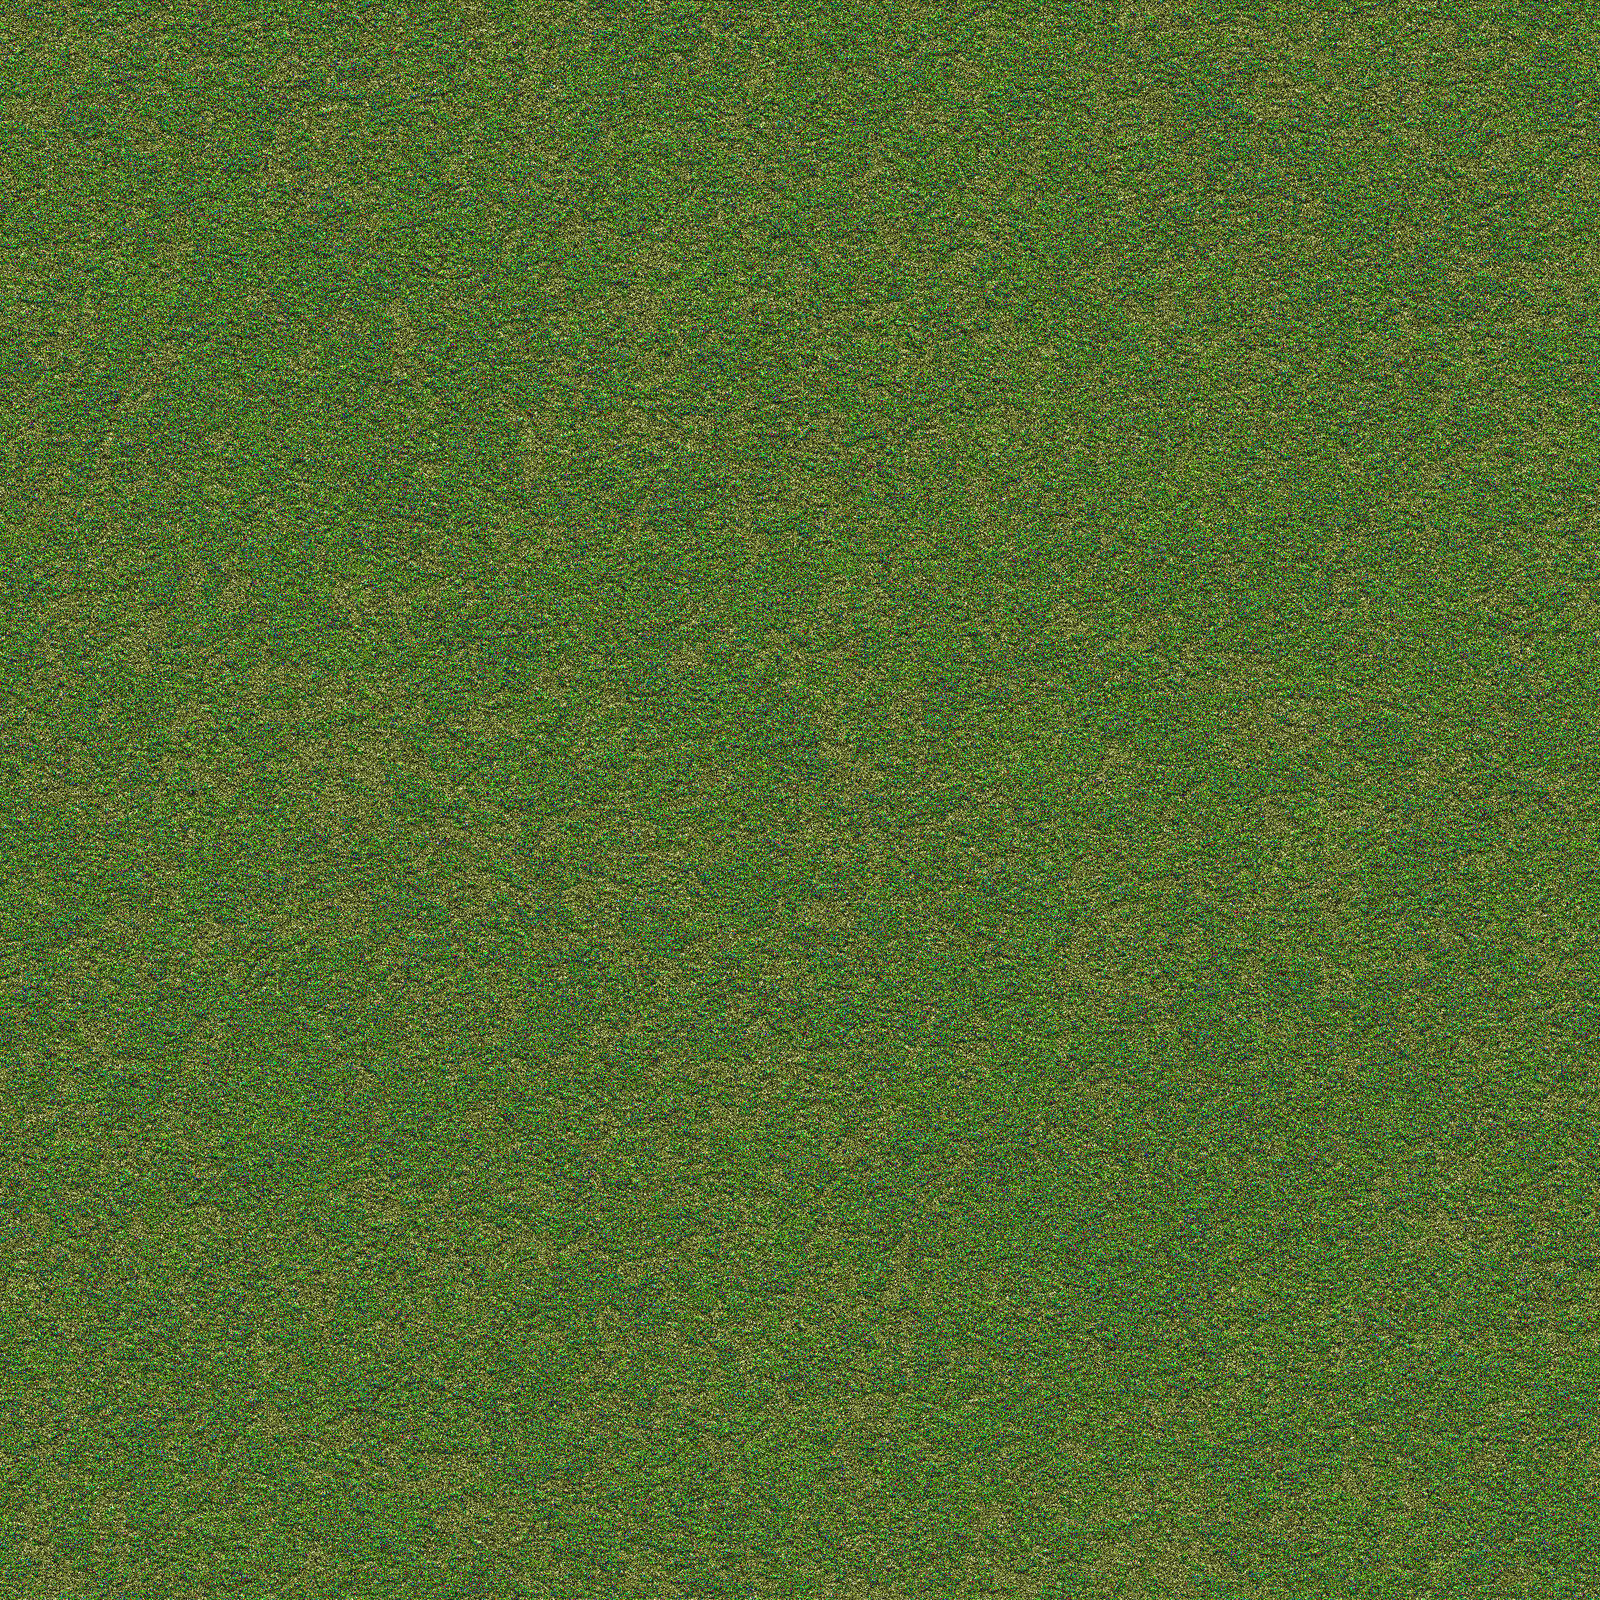 Dark_Green_grass_ground_land_dirt_aerial_top_seaml